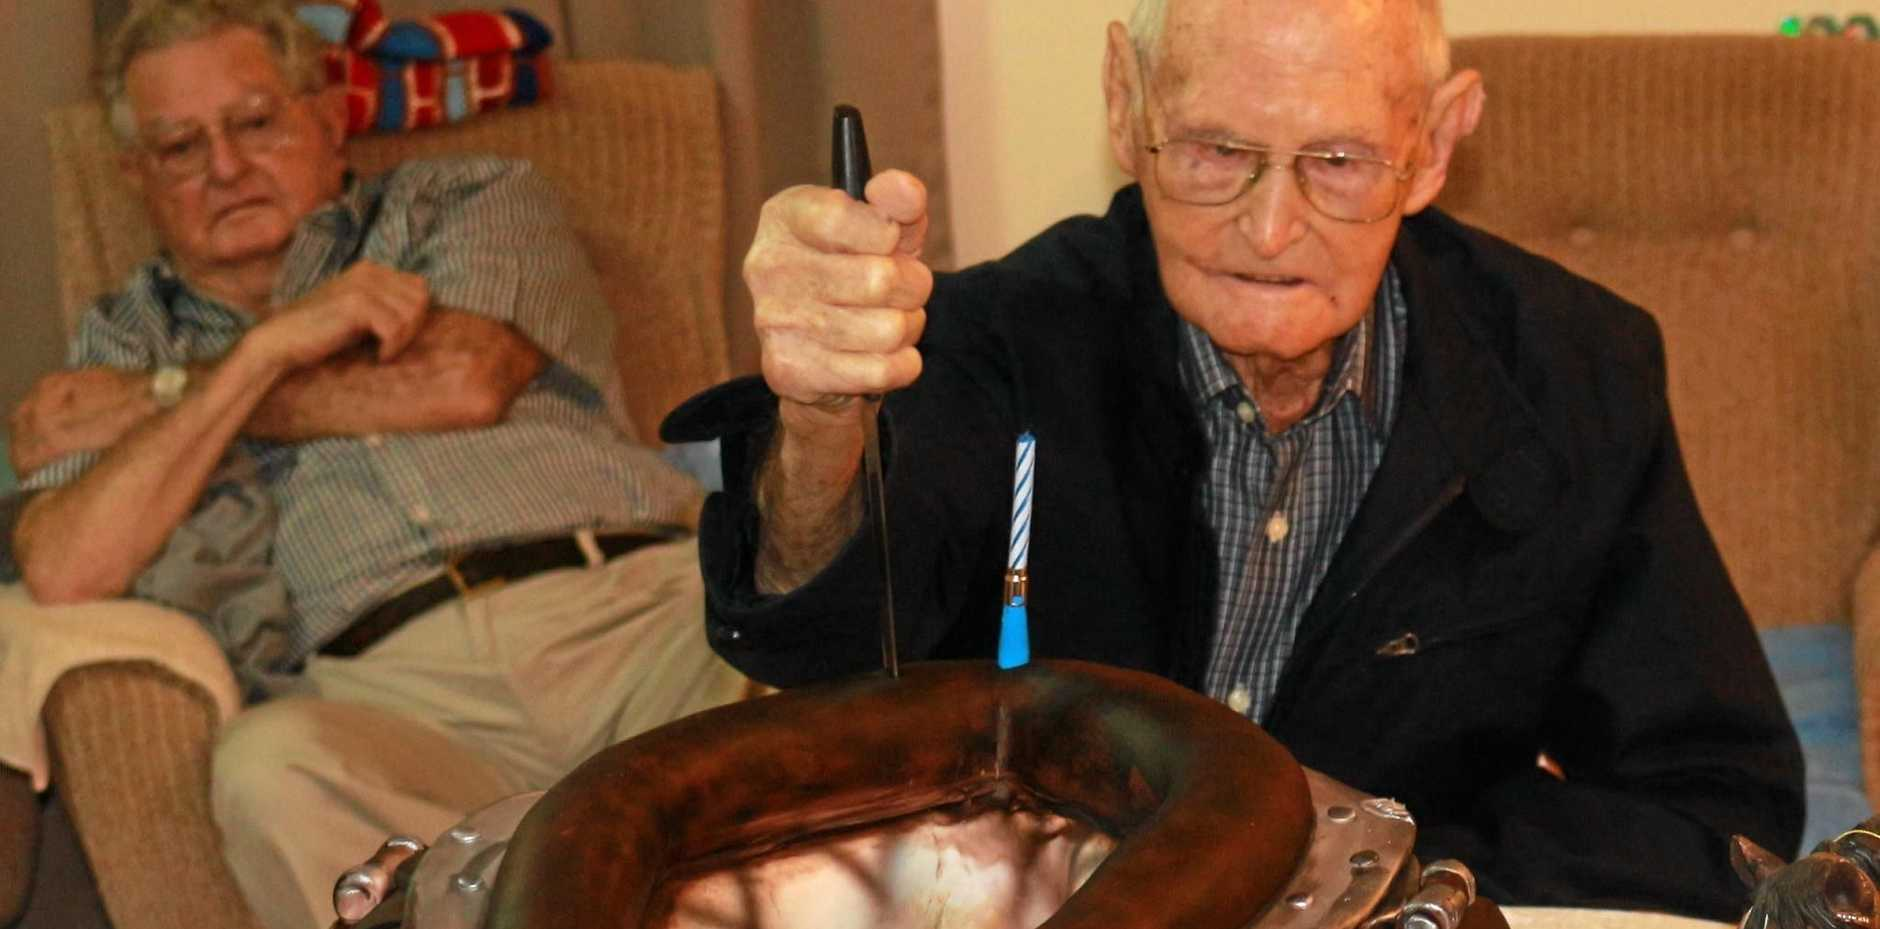 HORSEMAN: After a lifetime working with horses, Alby Cross had two cakes, a harness collar and a saddle to celebrate his 100th birthday.